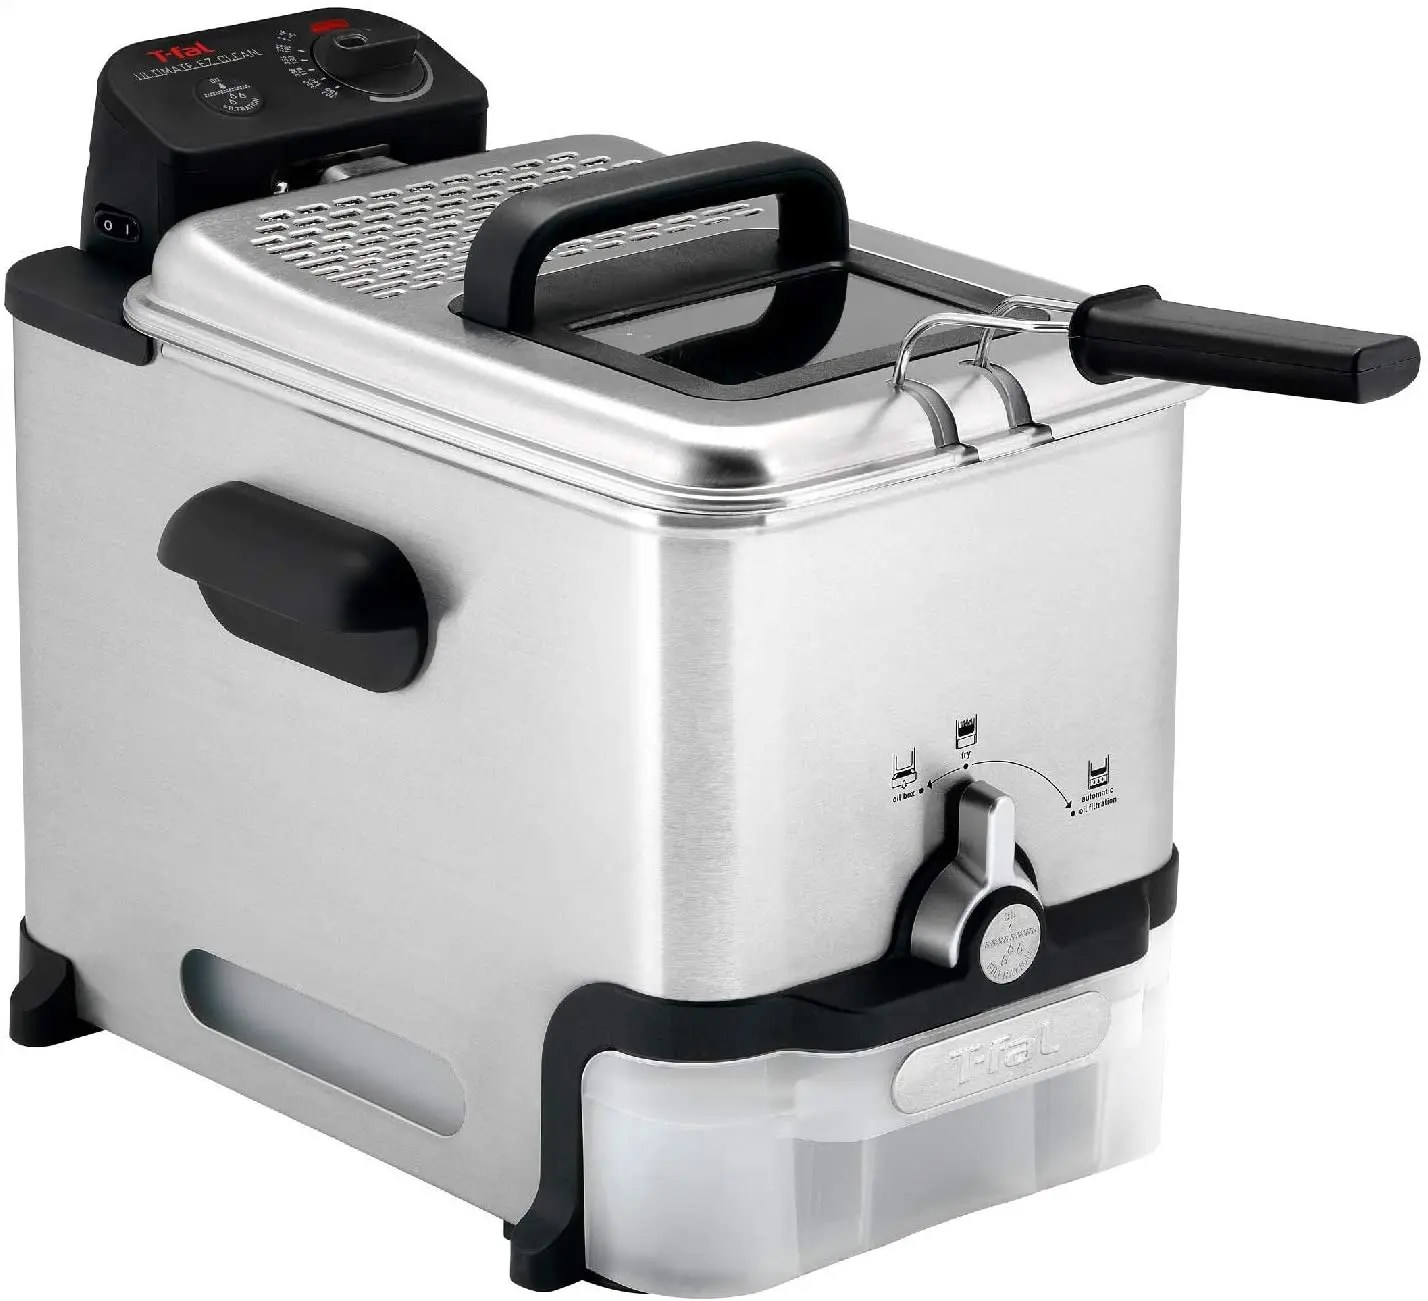 T-fal 3.5 L Easy to Clean Deep Fryer